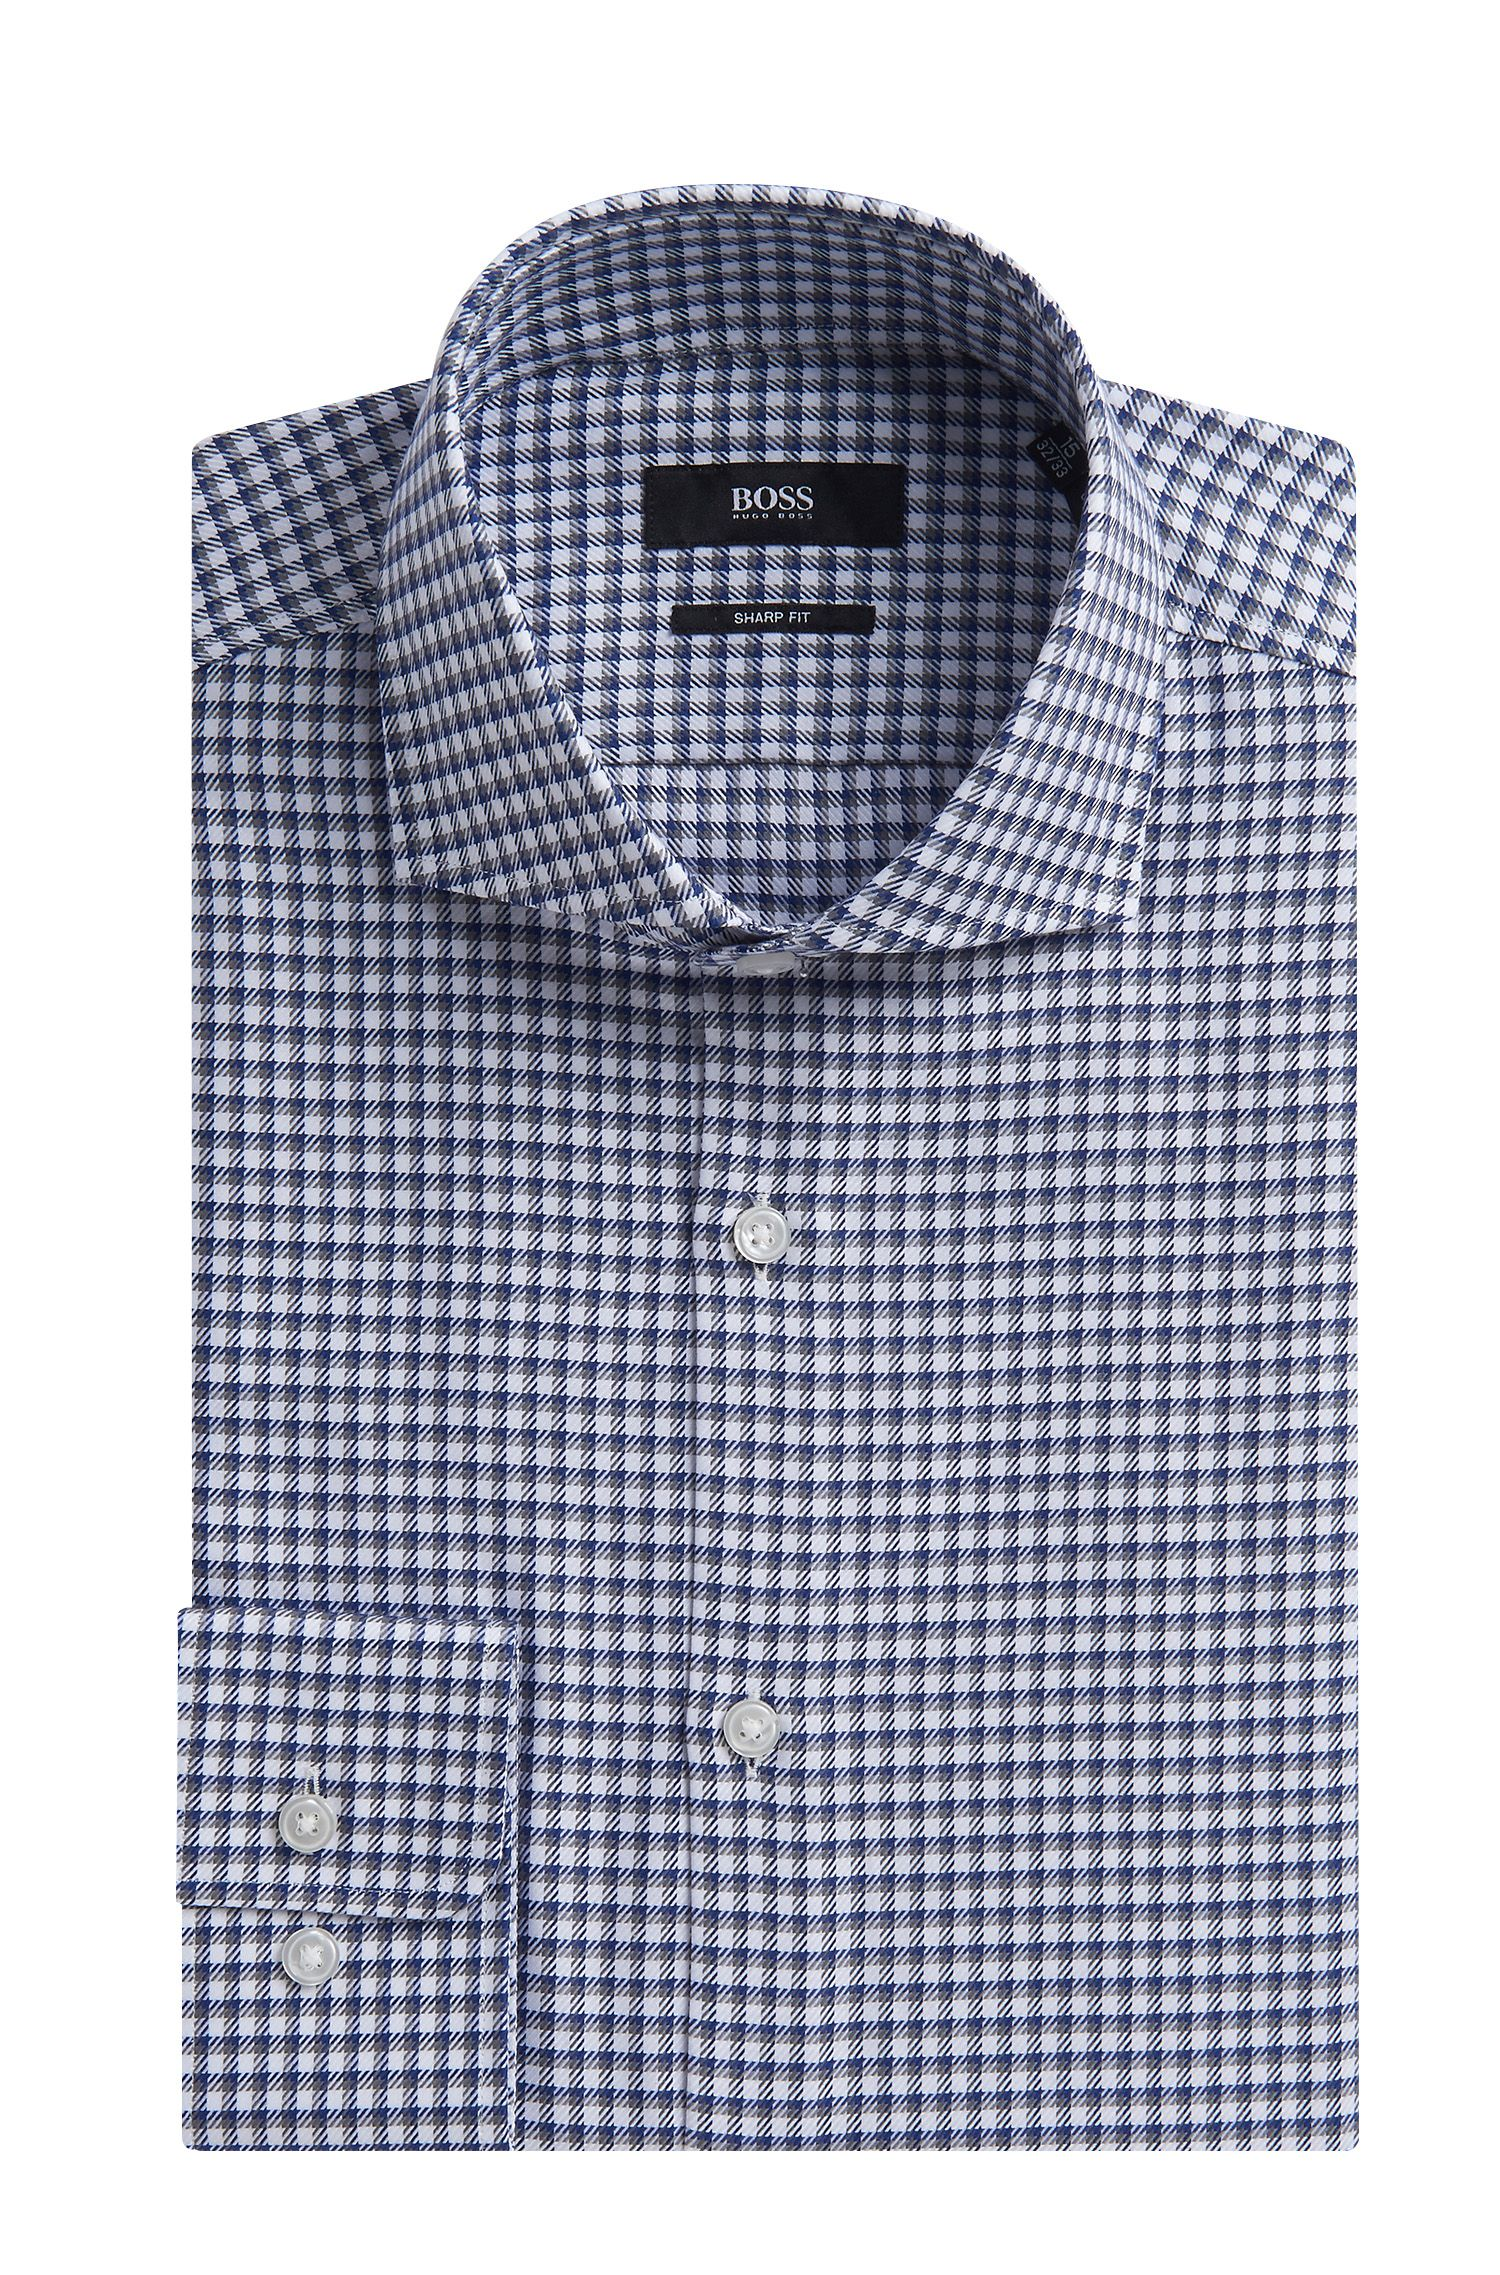 Checked Cotton Dress Shirt, Sharp Fit | Mark US